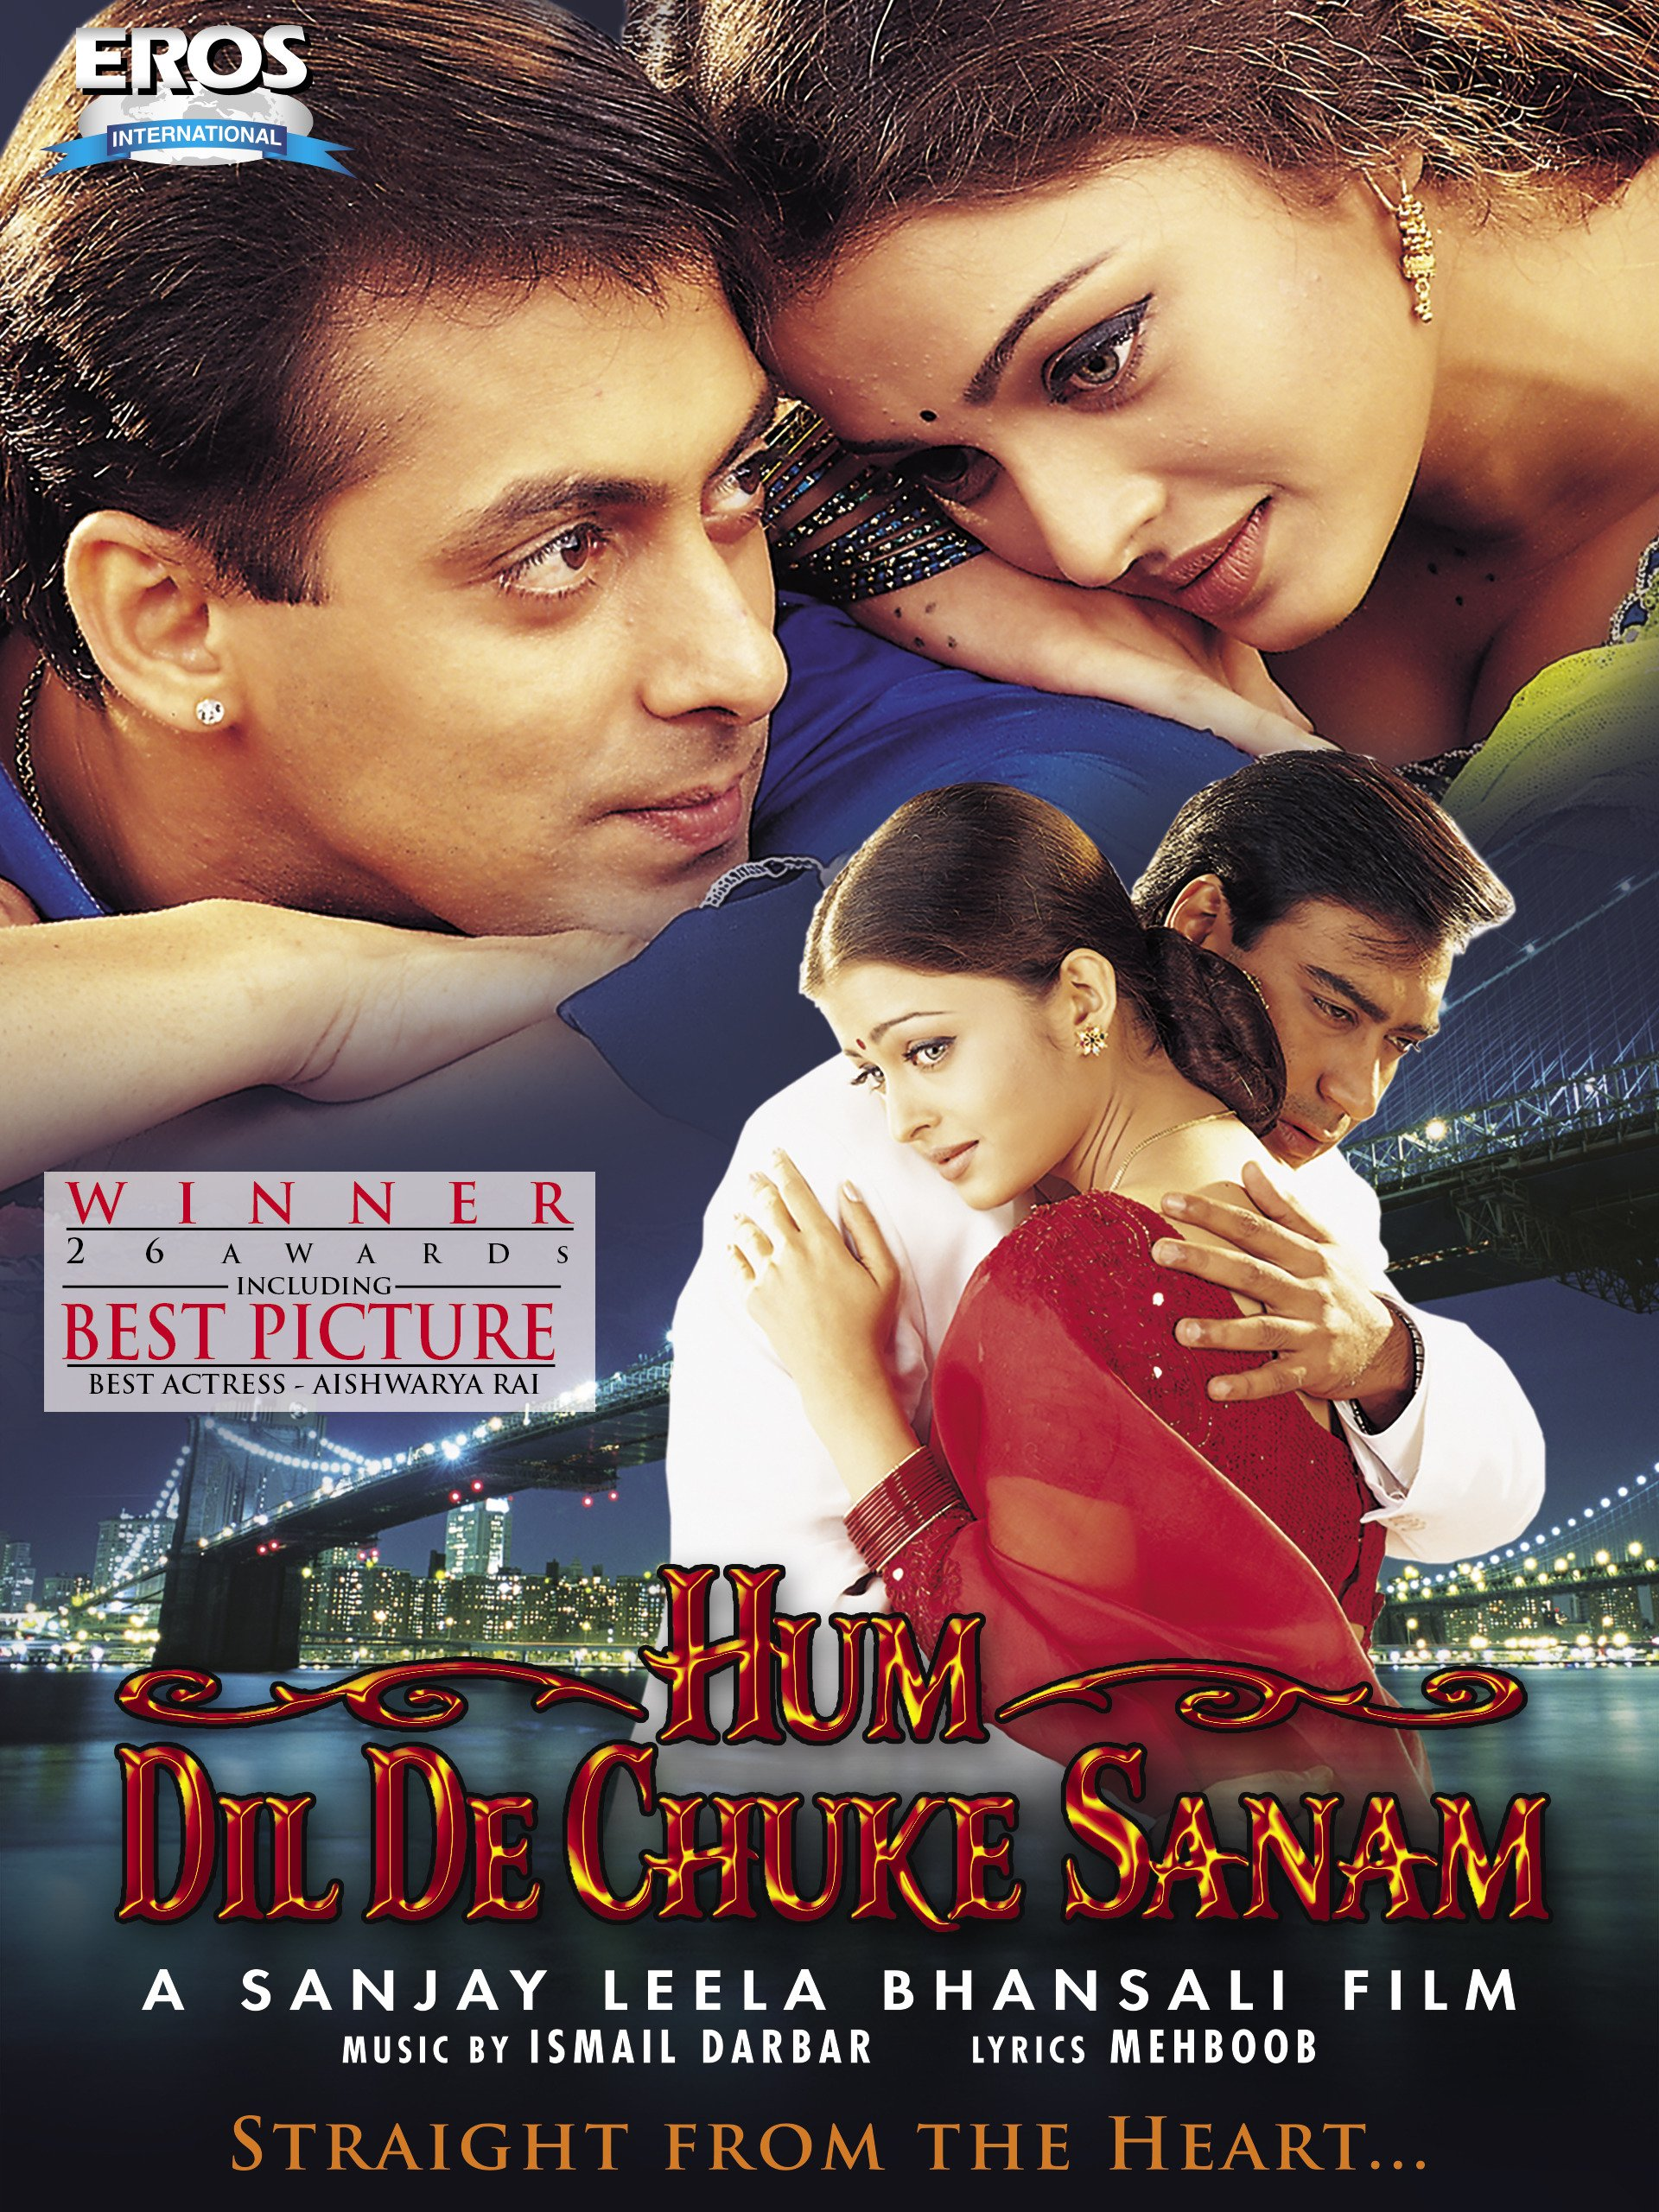 Watch Hum Dil De Chuke Sanam Prime Video